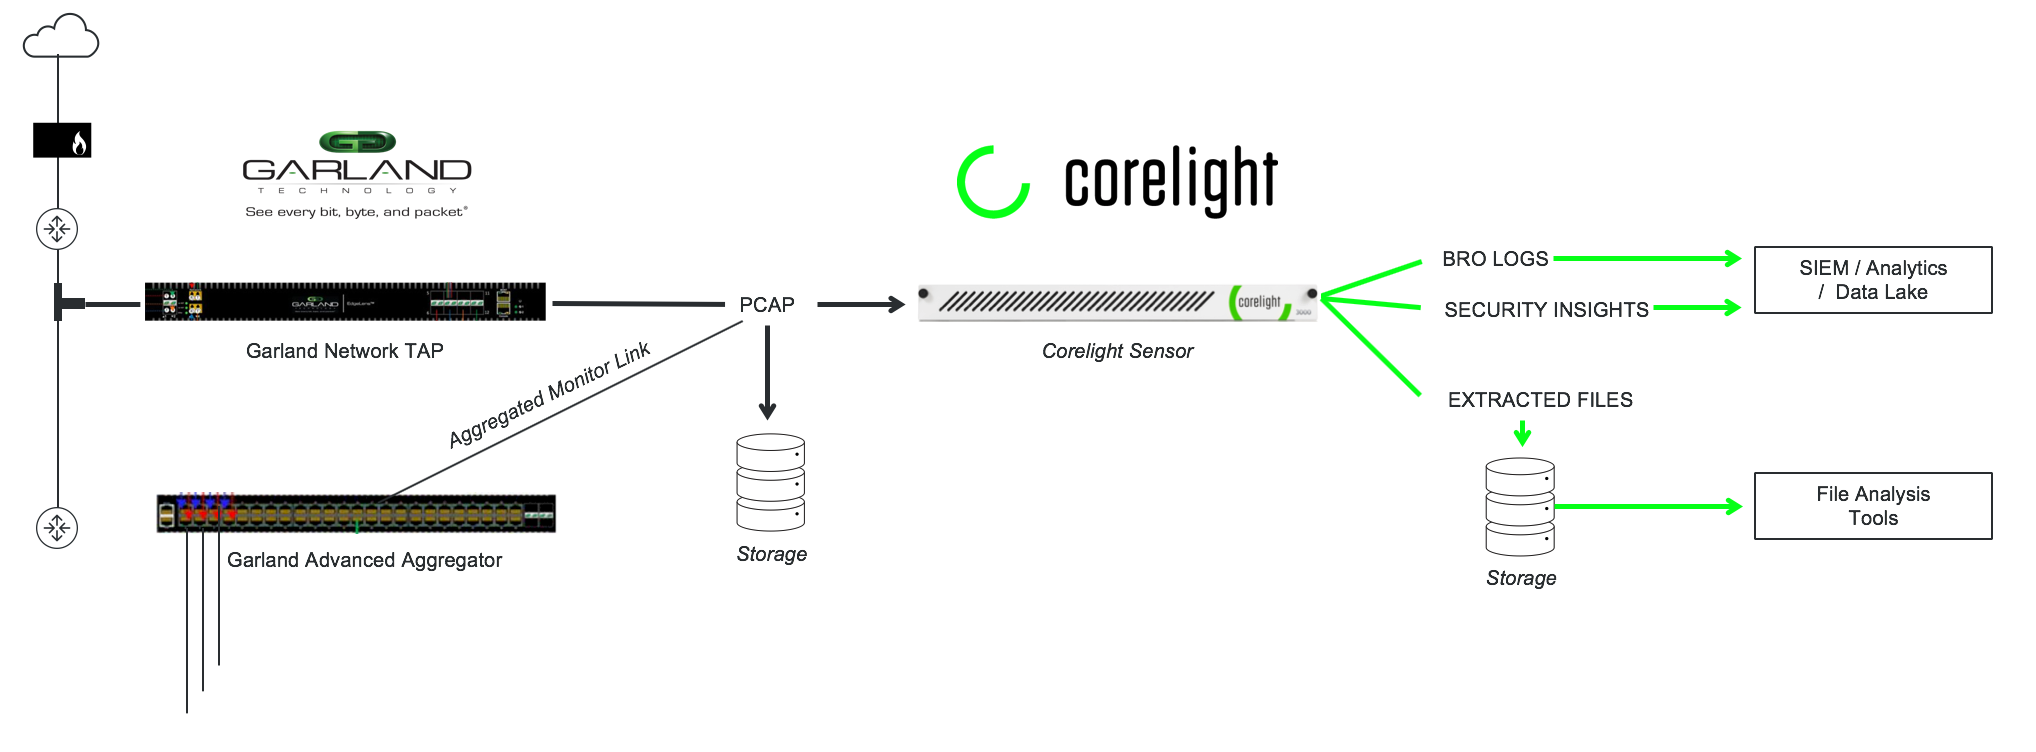 Corelight_Garland_Diagram